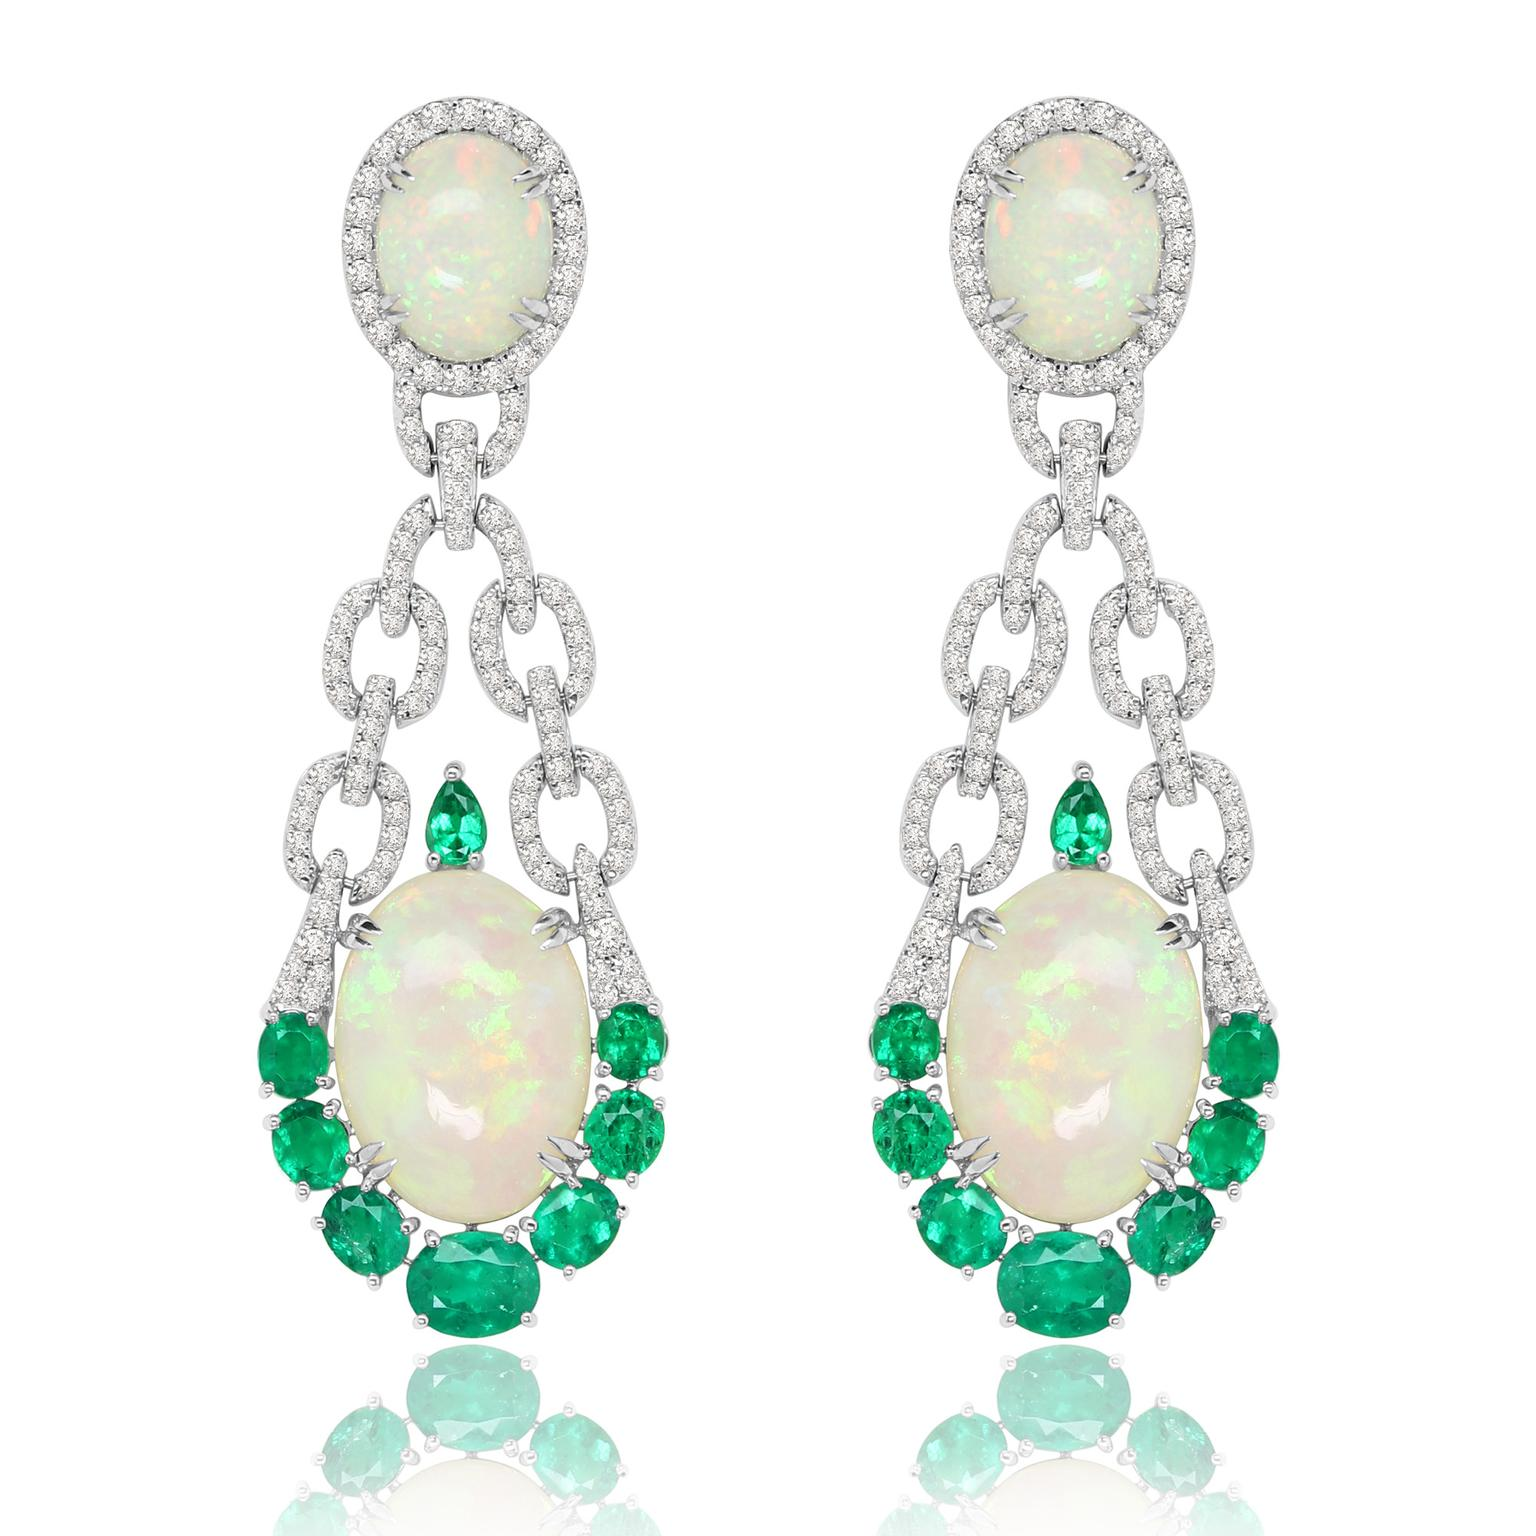 Completely new Couture opal earrings with emeralds and diamonds | Sutra | The  XQ25